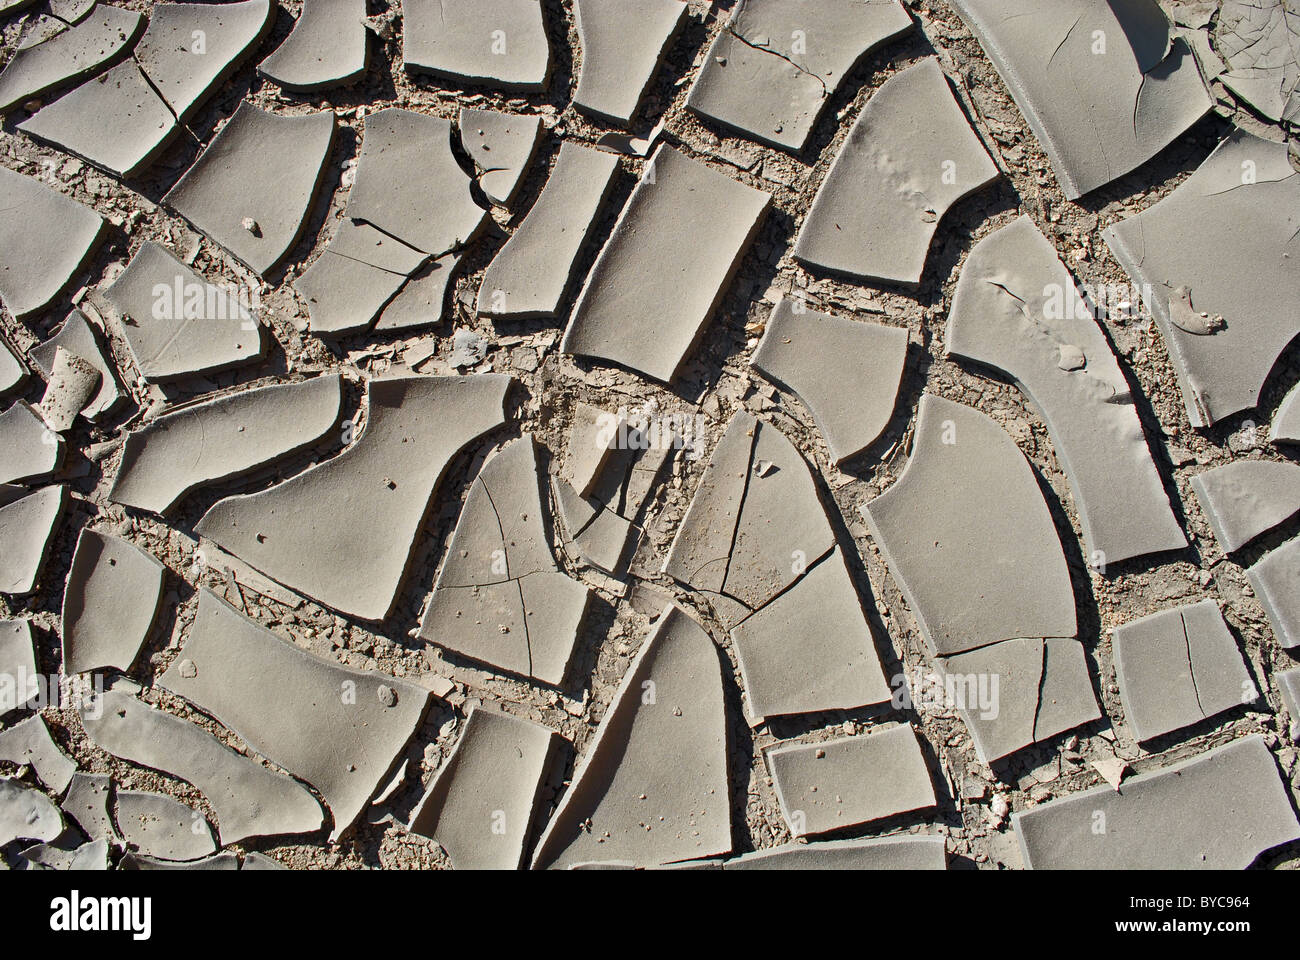 Dry cracked earth in Tunisia - Stock Image